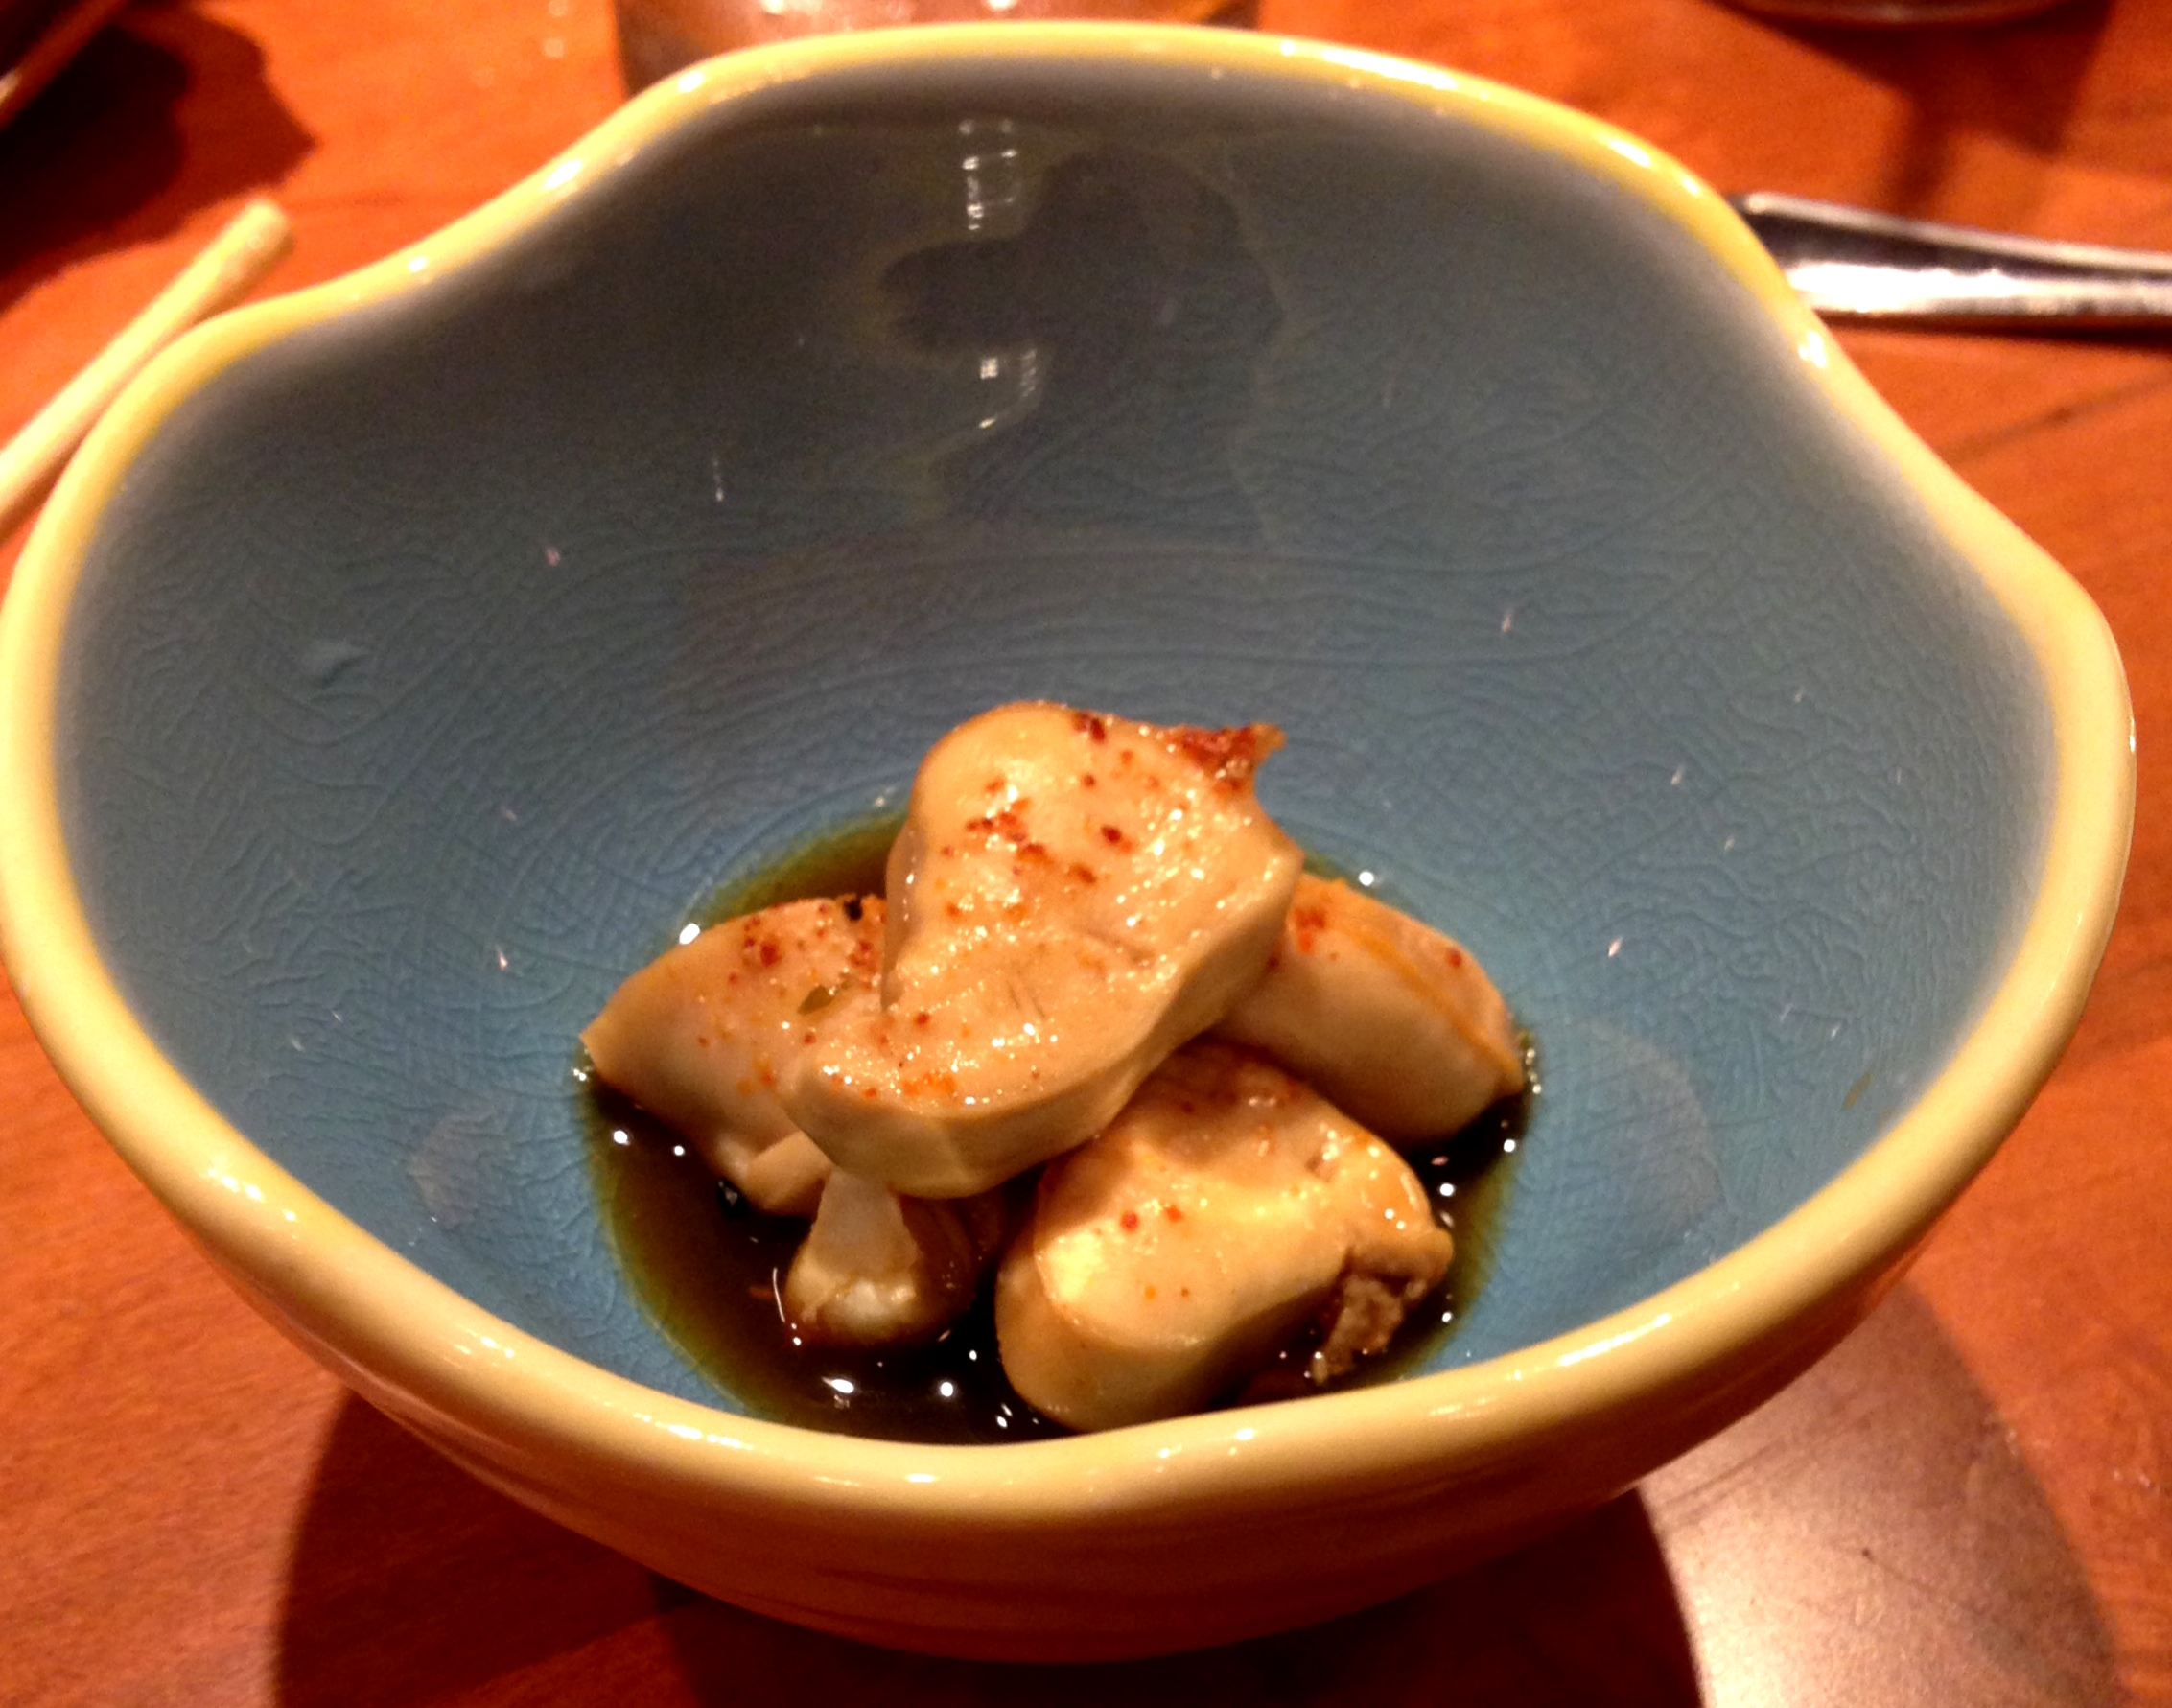 Appetizer Asari Sakamushi at Sushi Dojo in New York